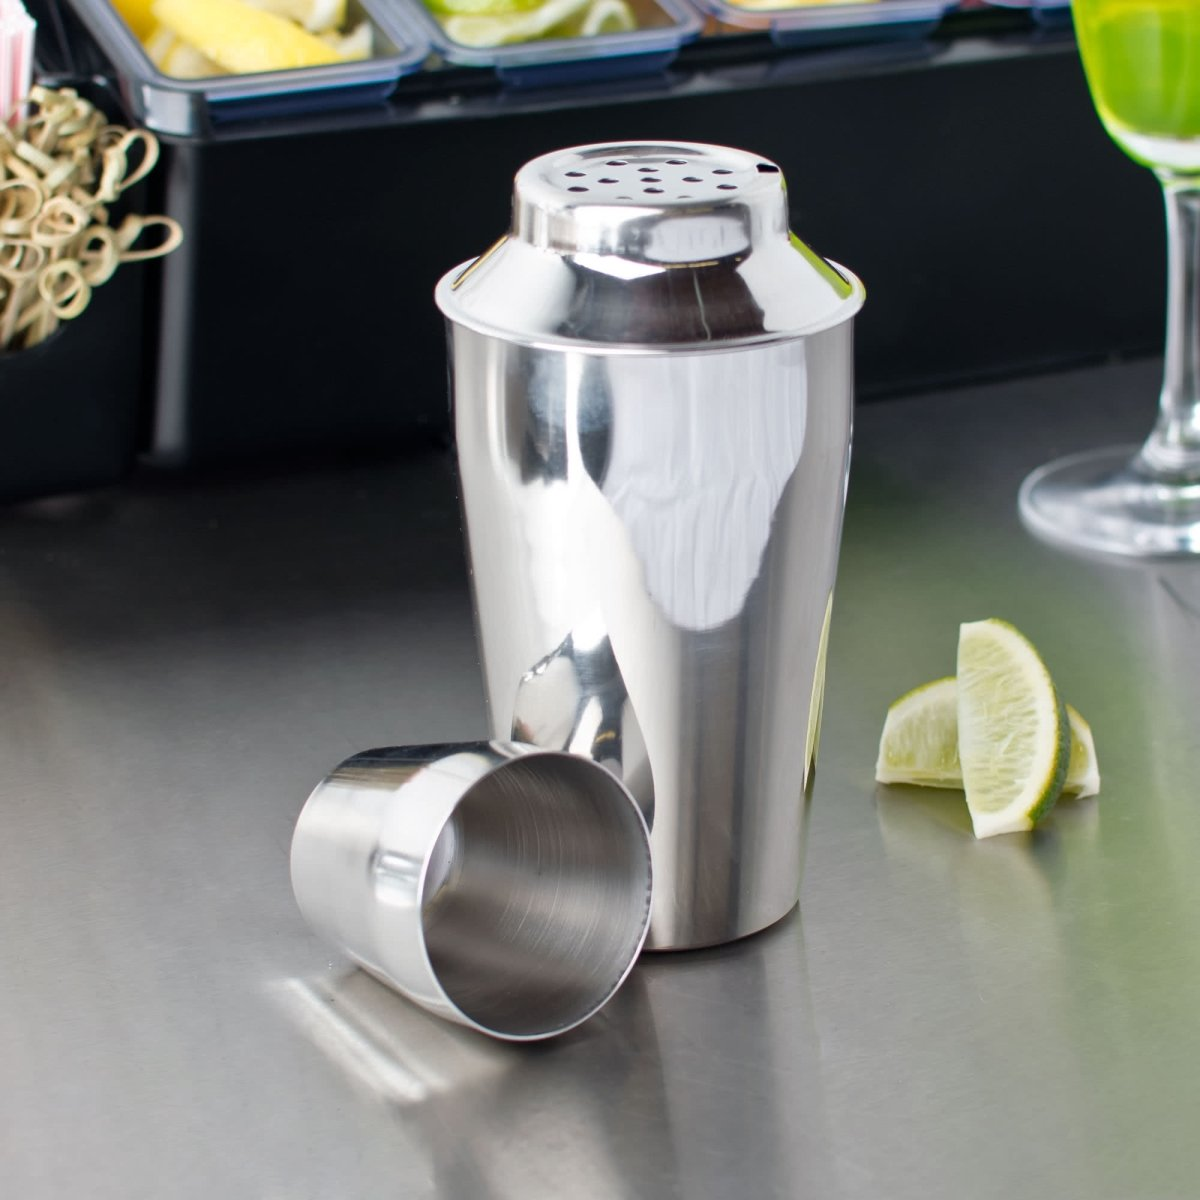 StarCrafts 2335 16 oz Stainless Steel Cocktail Shaker